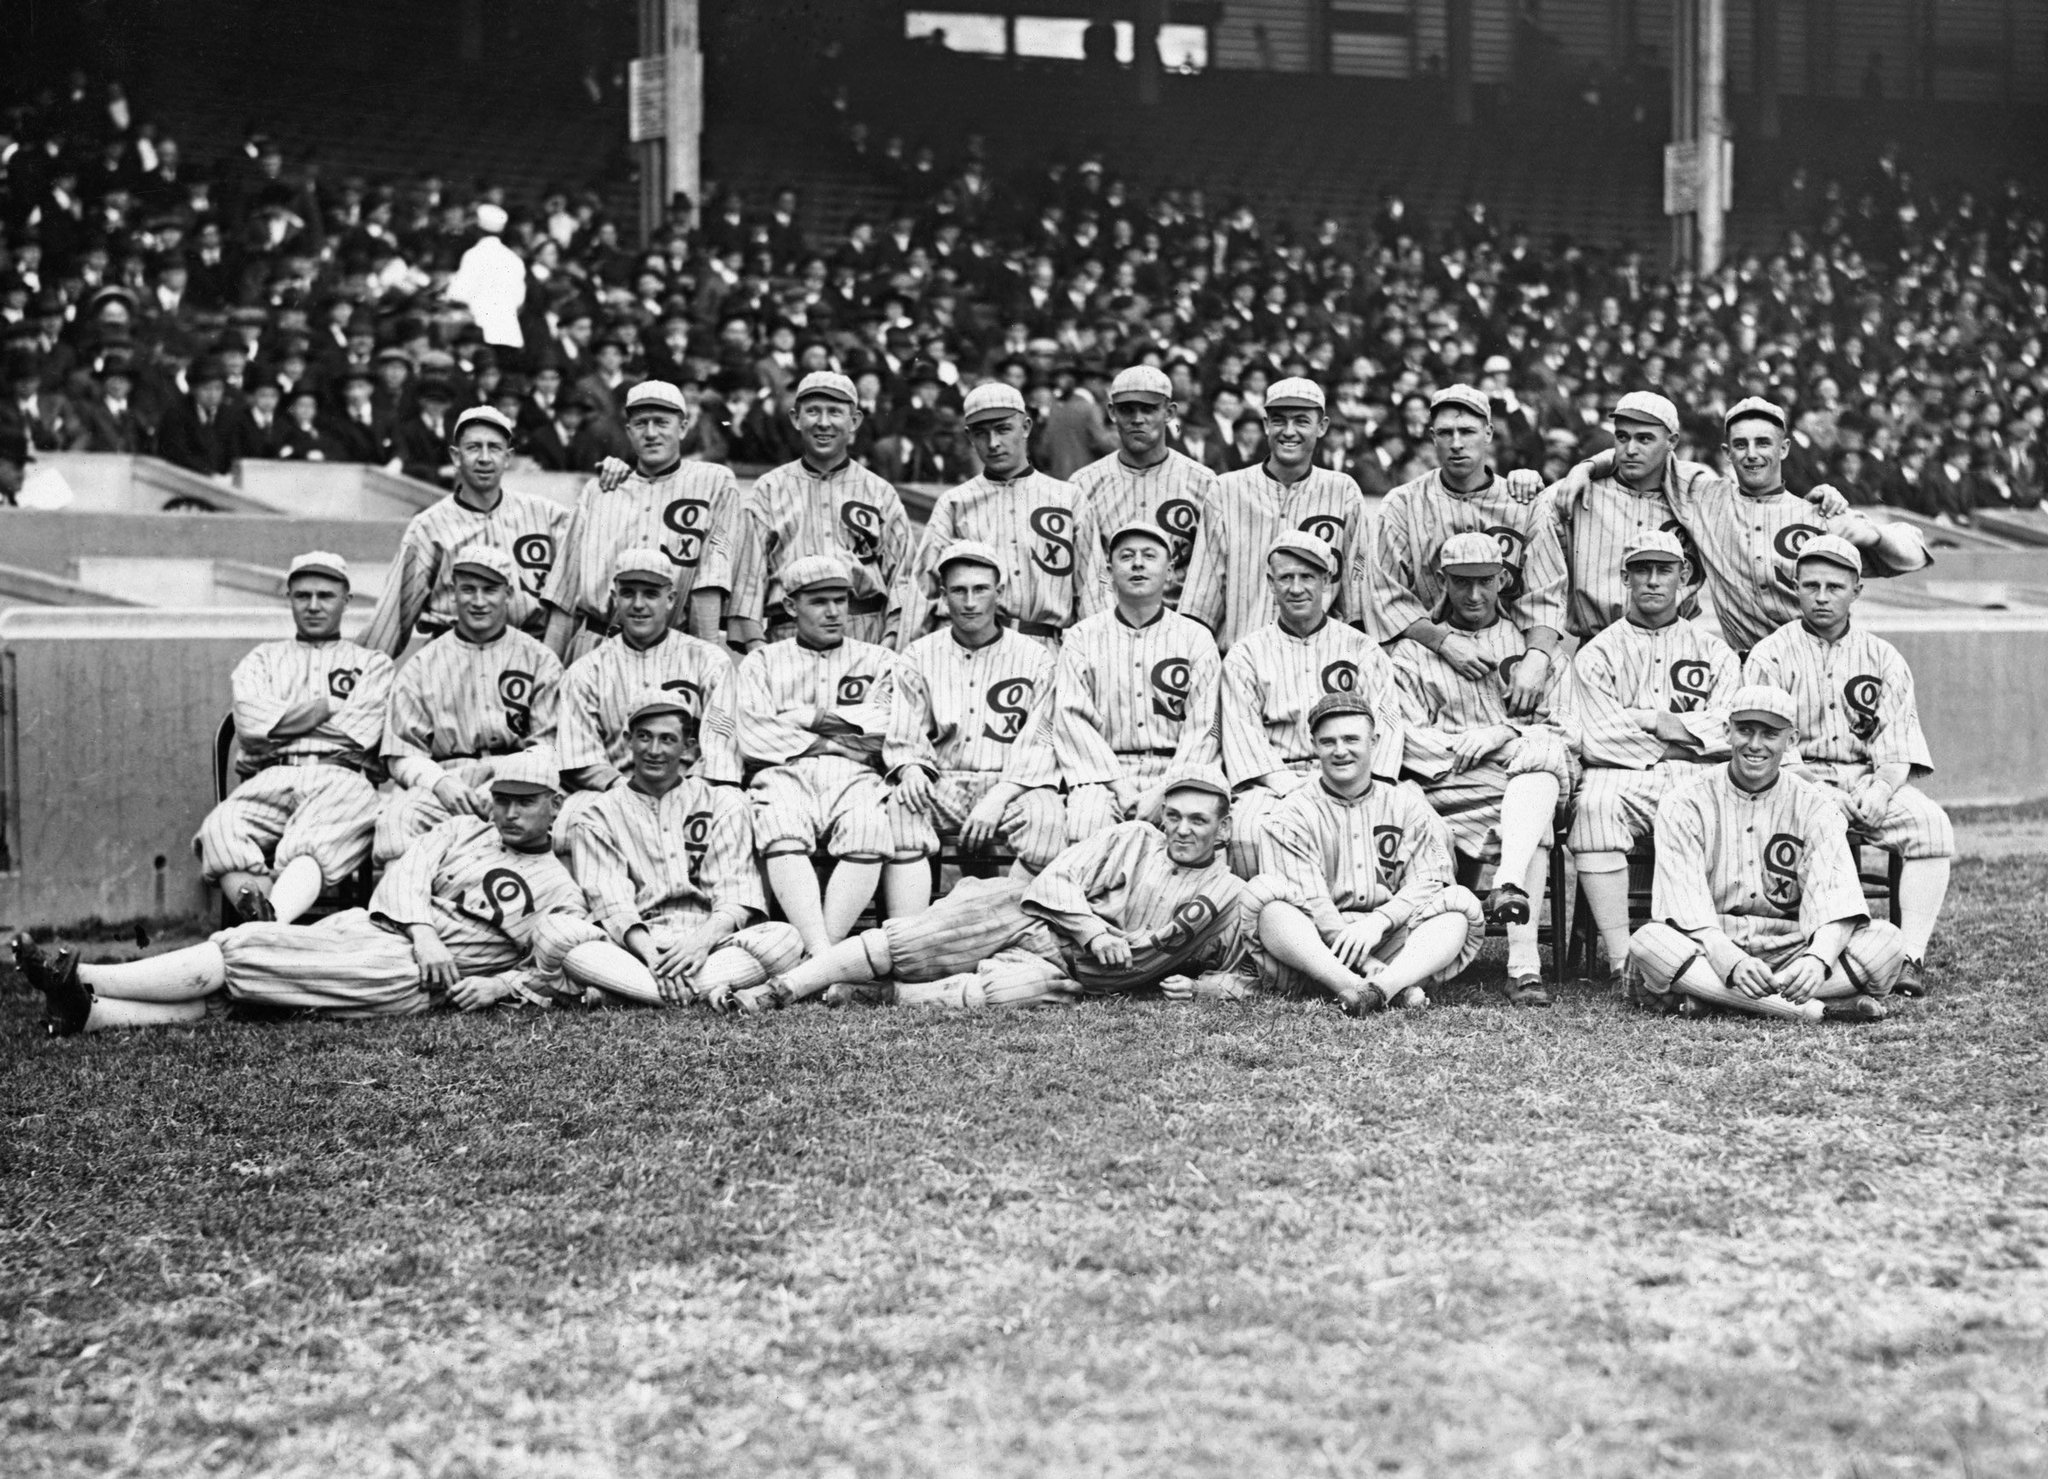 an analysis of the 1919 world series and the black sox A fixed world series casts a shadow over the national game the eight white sox players, known as the black sox, were the 1919 white sox--the white sox of.